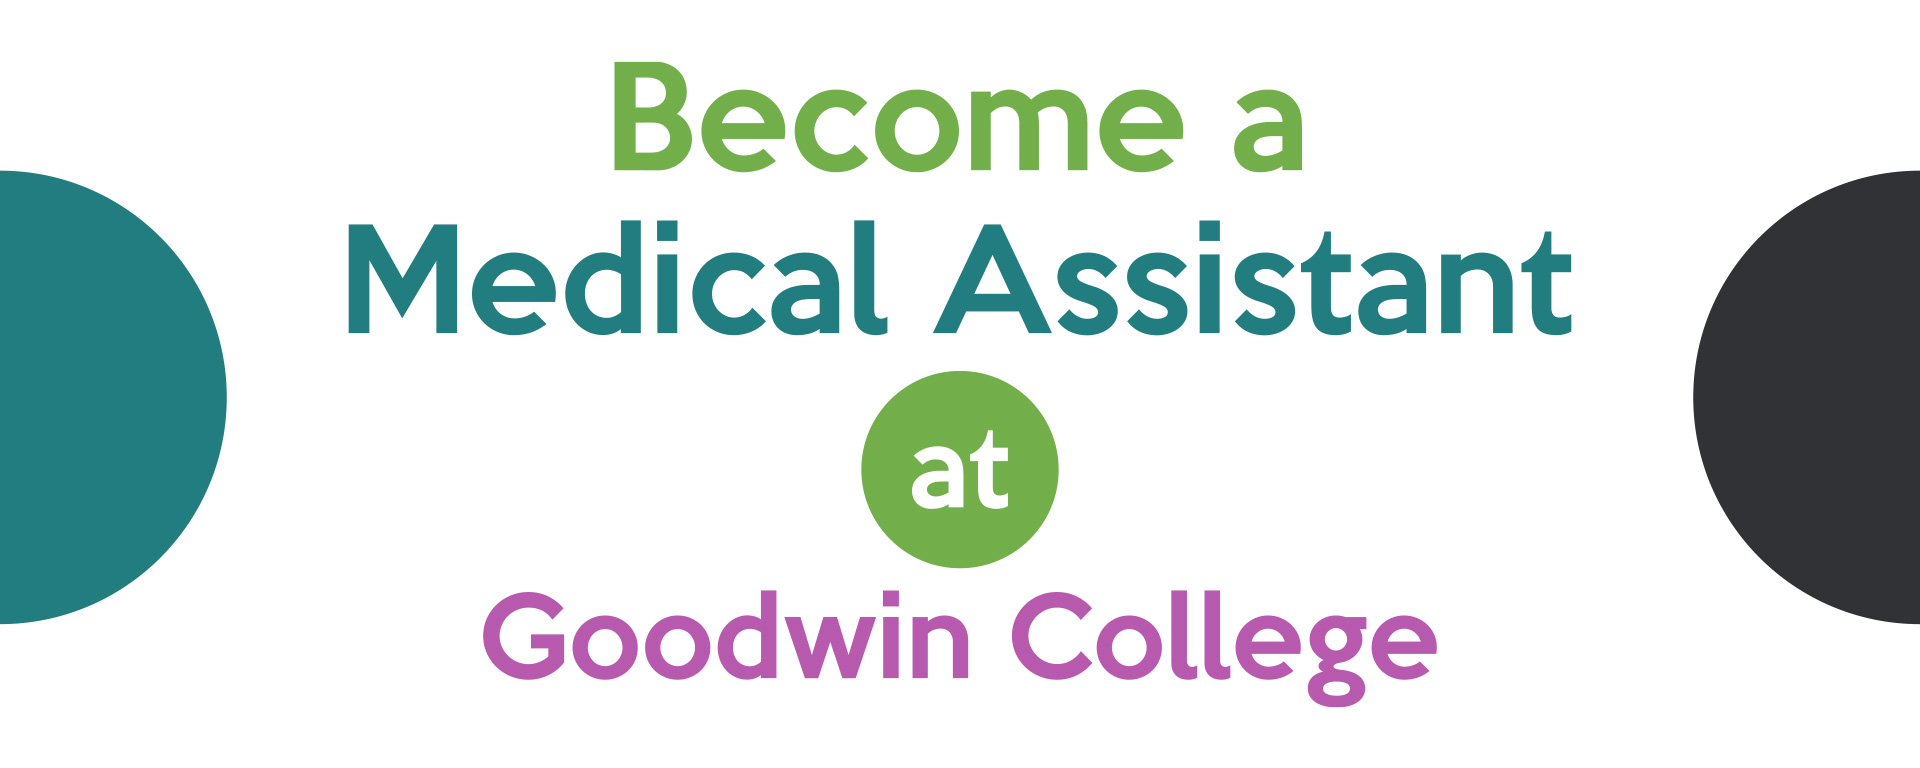 Become a medical assistant goodwin college become a medical assistant at goodwin college 1betcityfo Image collections